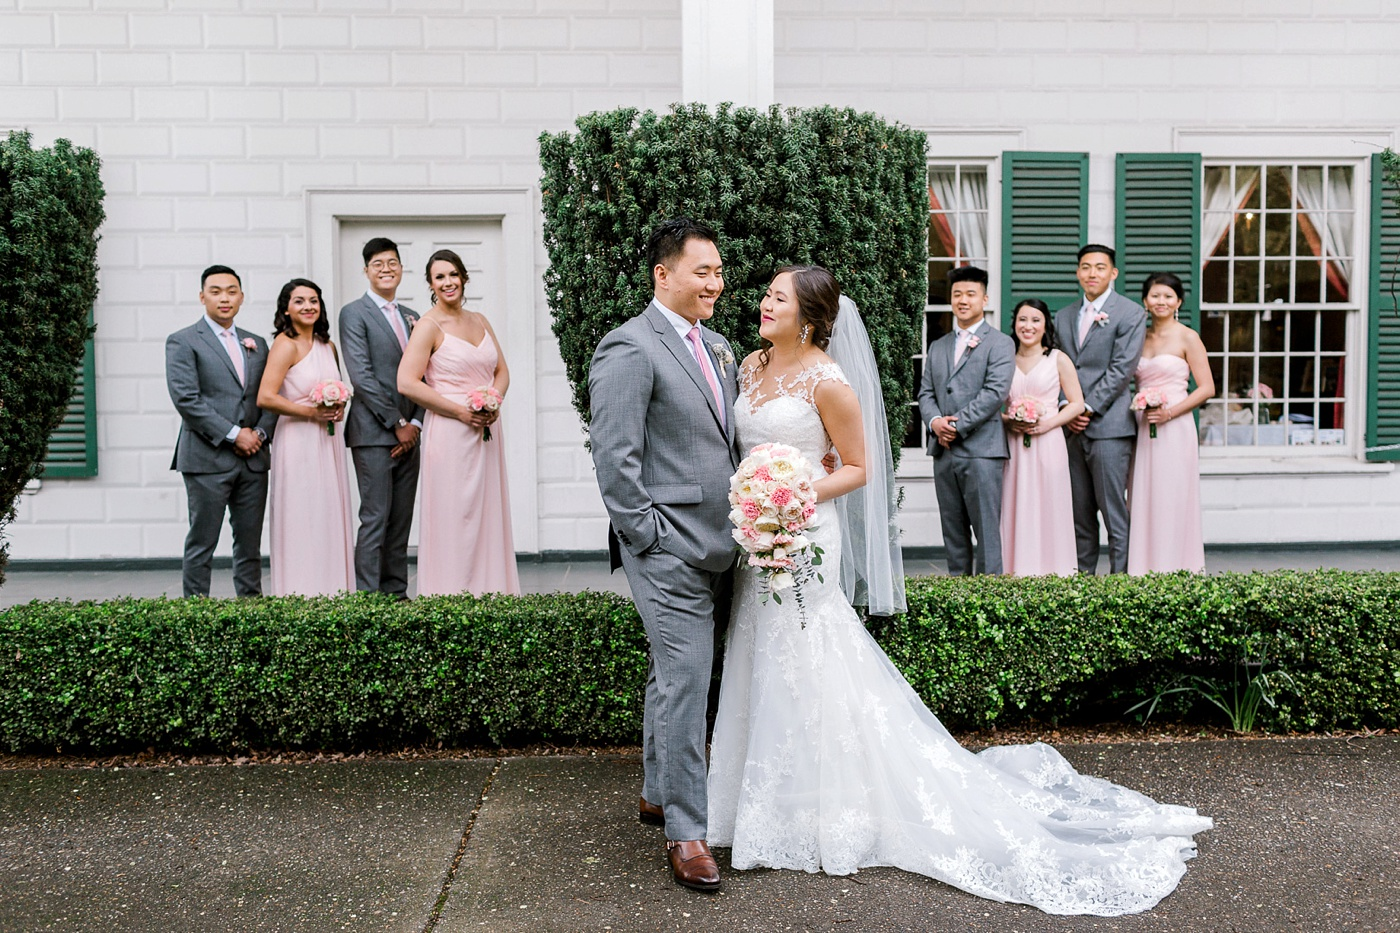 Jessica + Jonathon on April 28, 2018 ♥ Huoy Chen Photography at Rainier Chapter House (Seattle, WA)